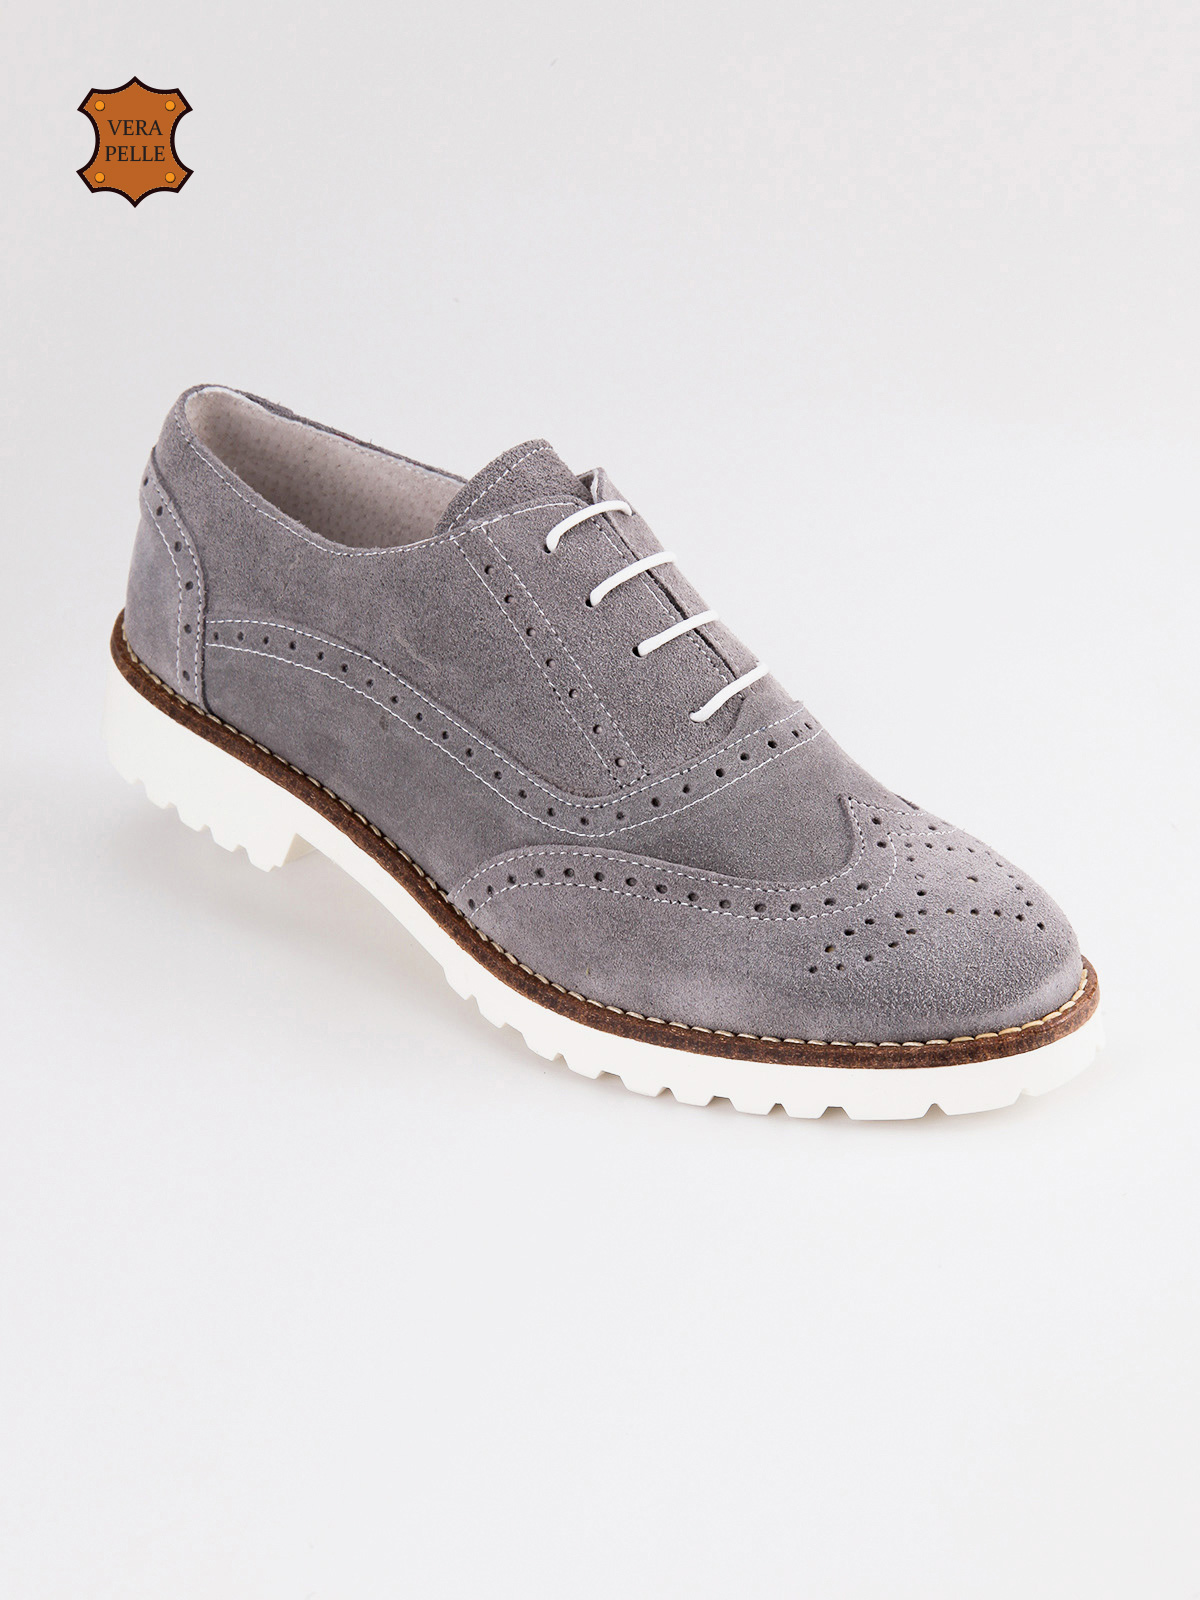 MISTER ANGEL Brogues GENUINE LEATHER SUEDE Lace-up